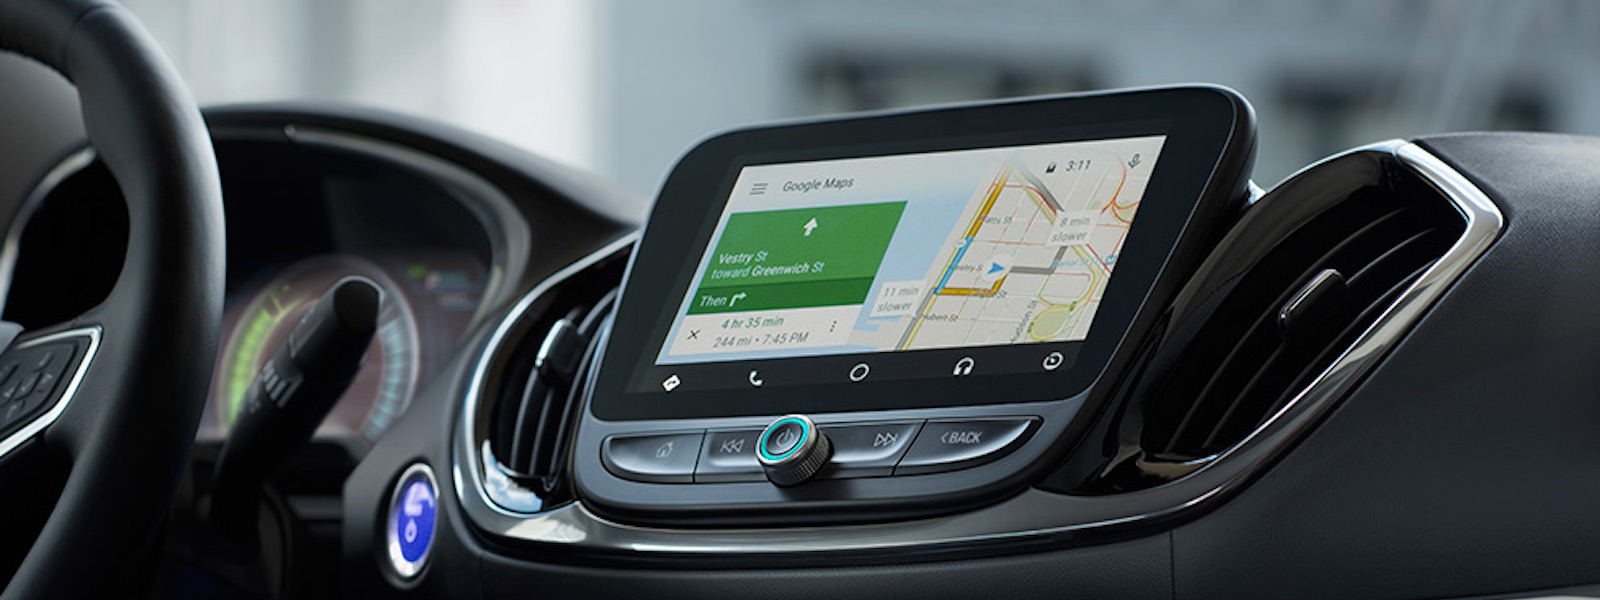 The 2017 Chevy Volt Interior design and navigation.